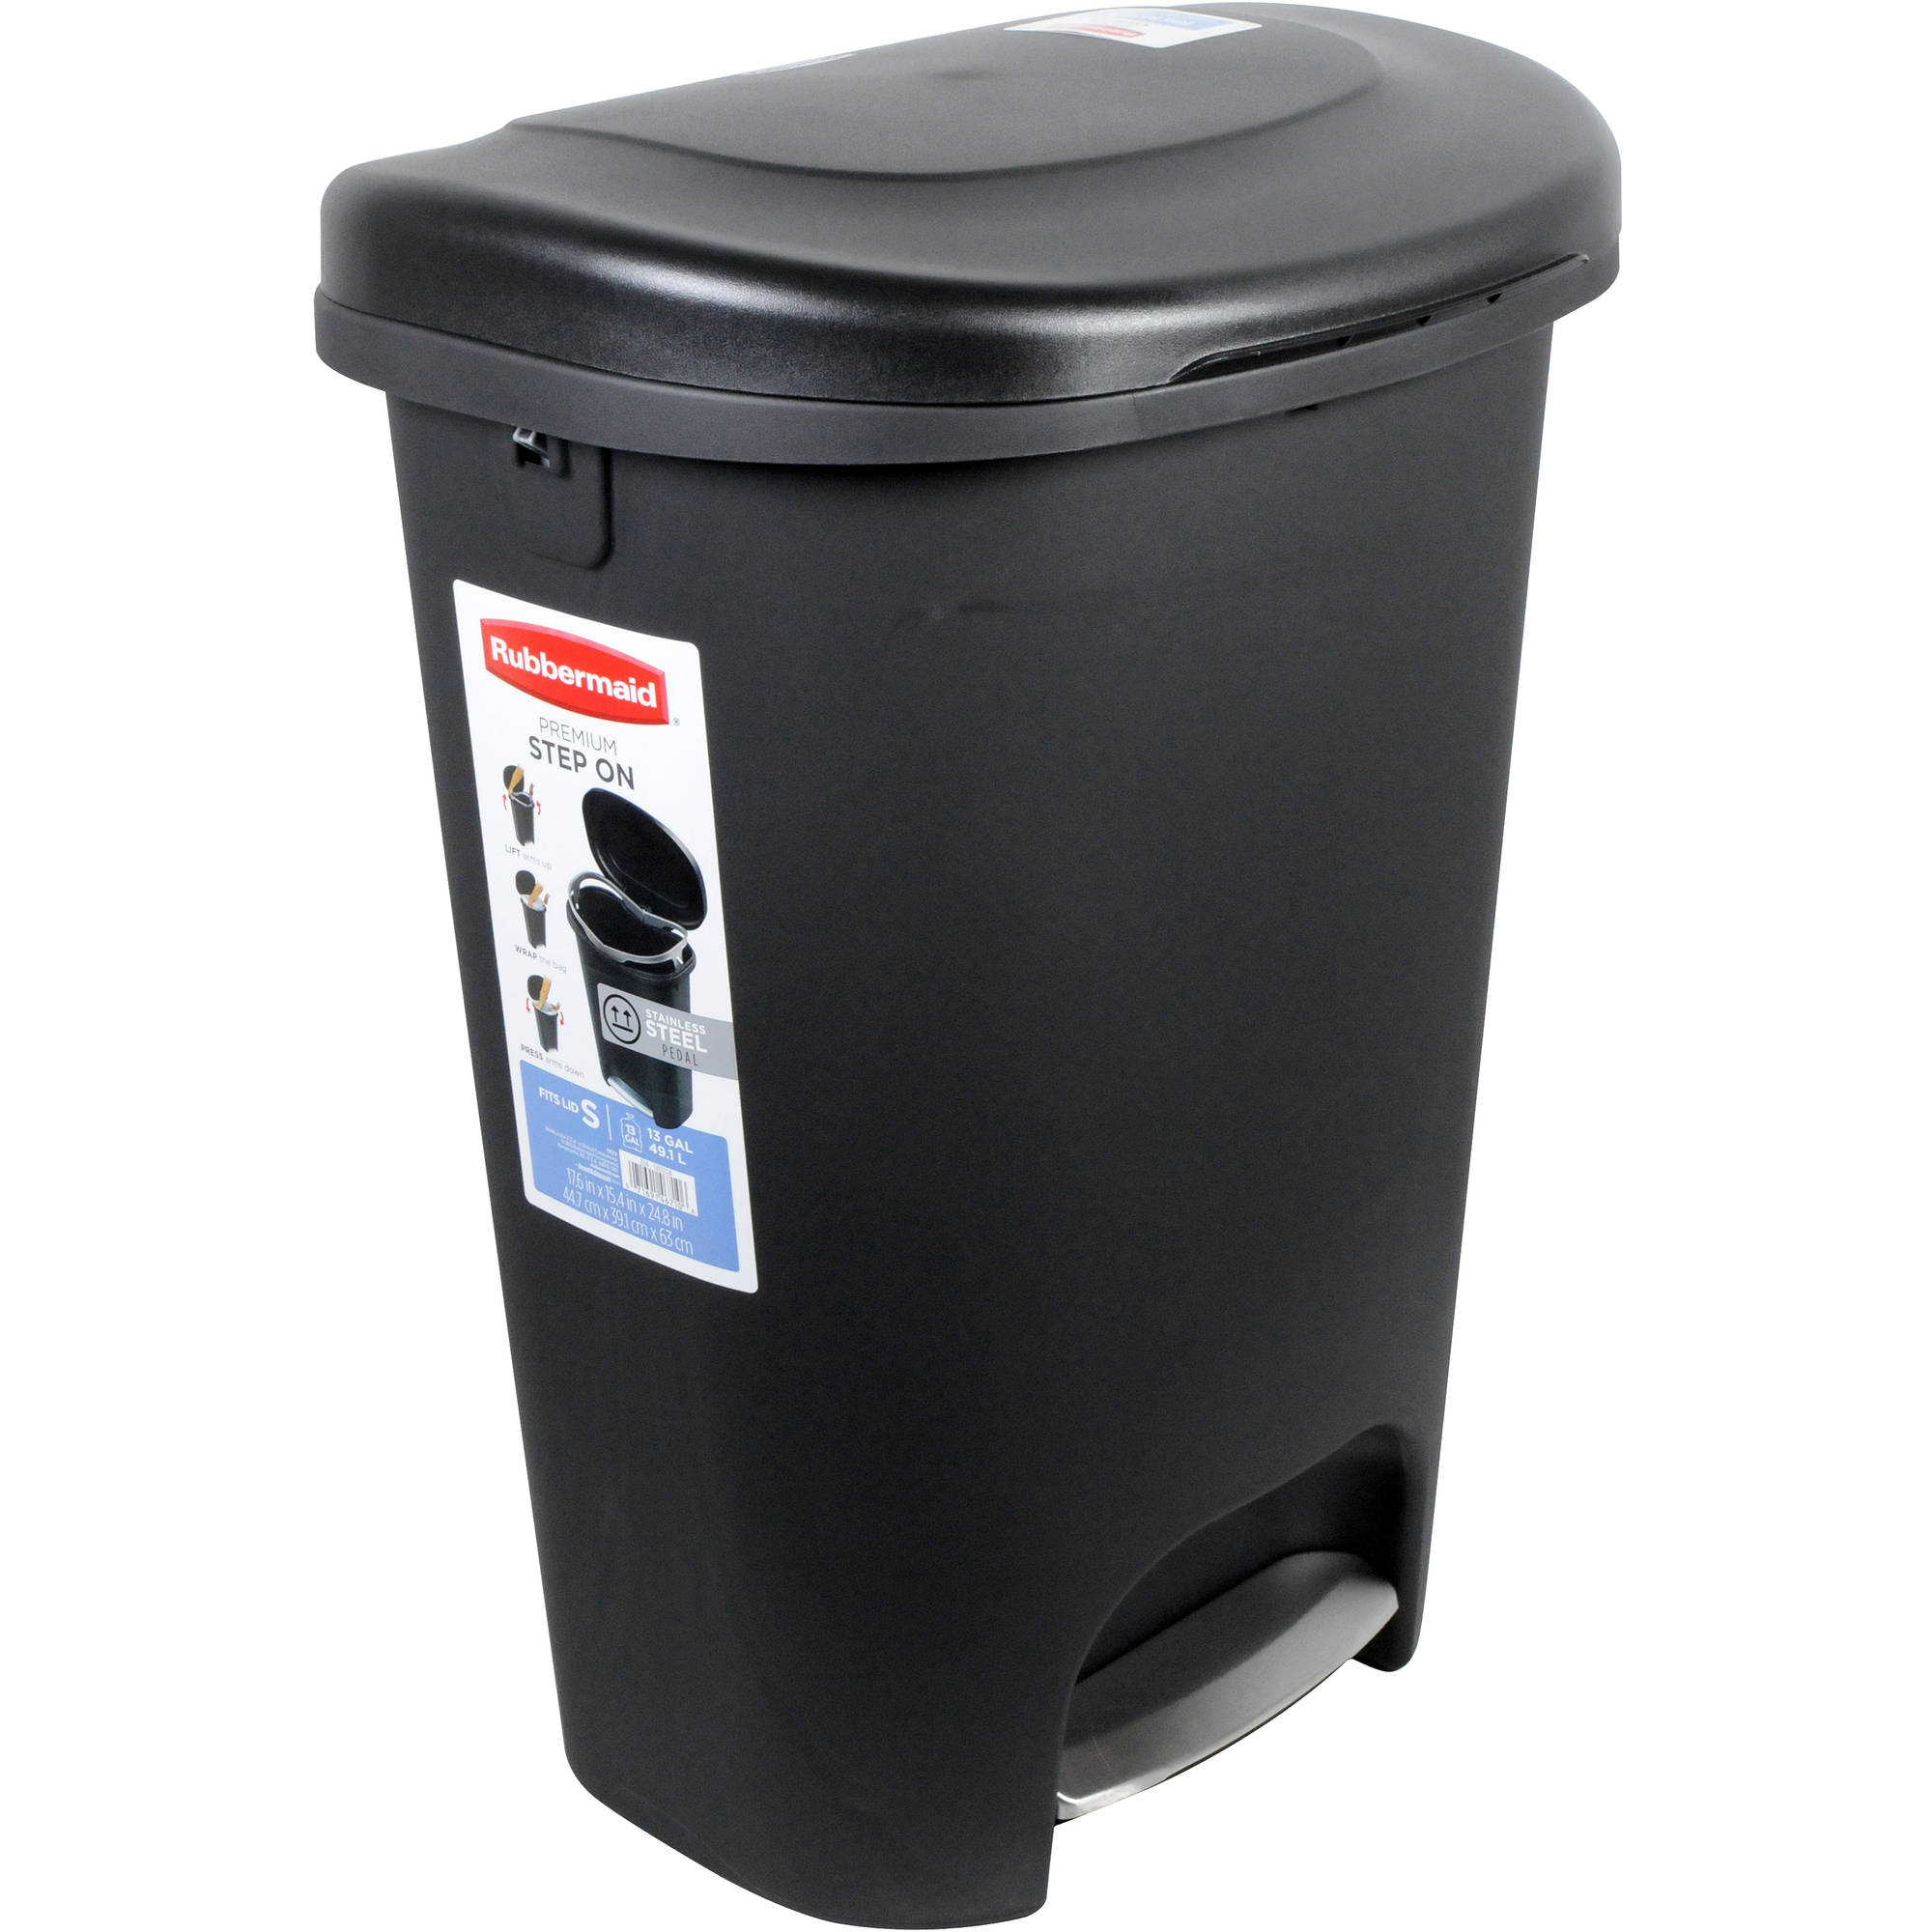 rubbermaid premium step-on trash can, 13 gal, black with metal